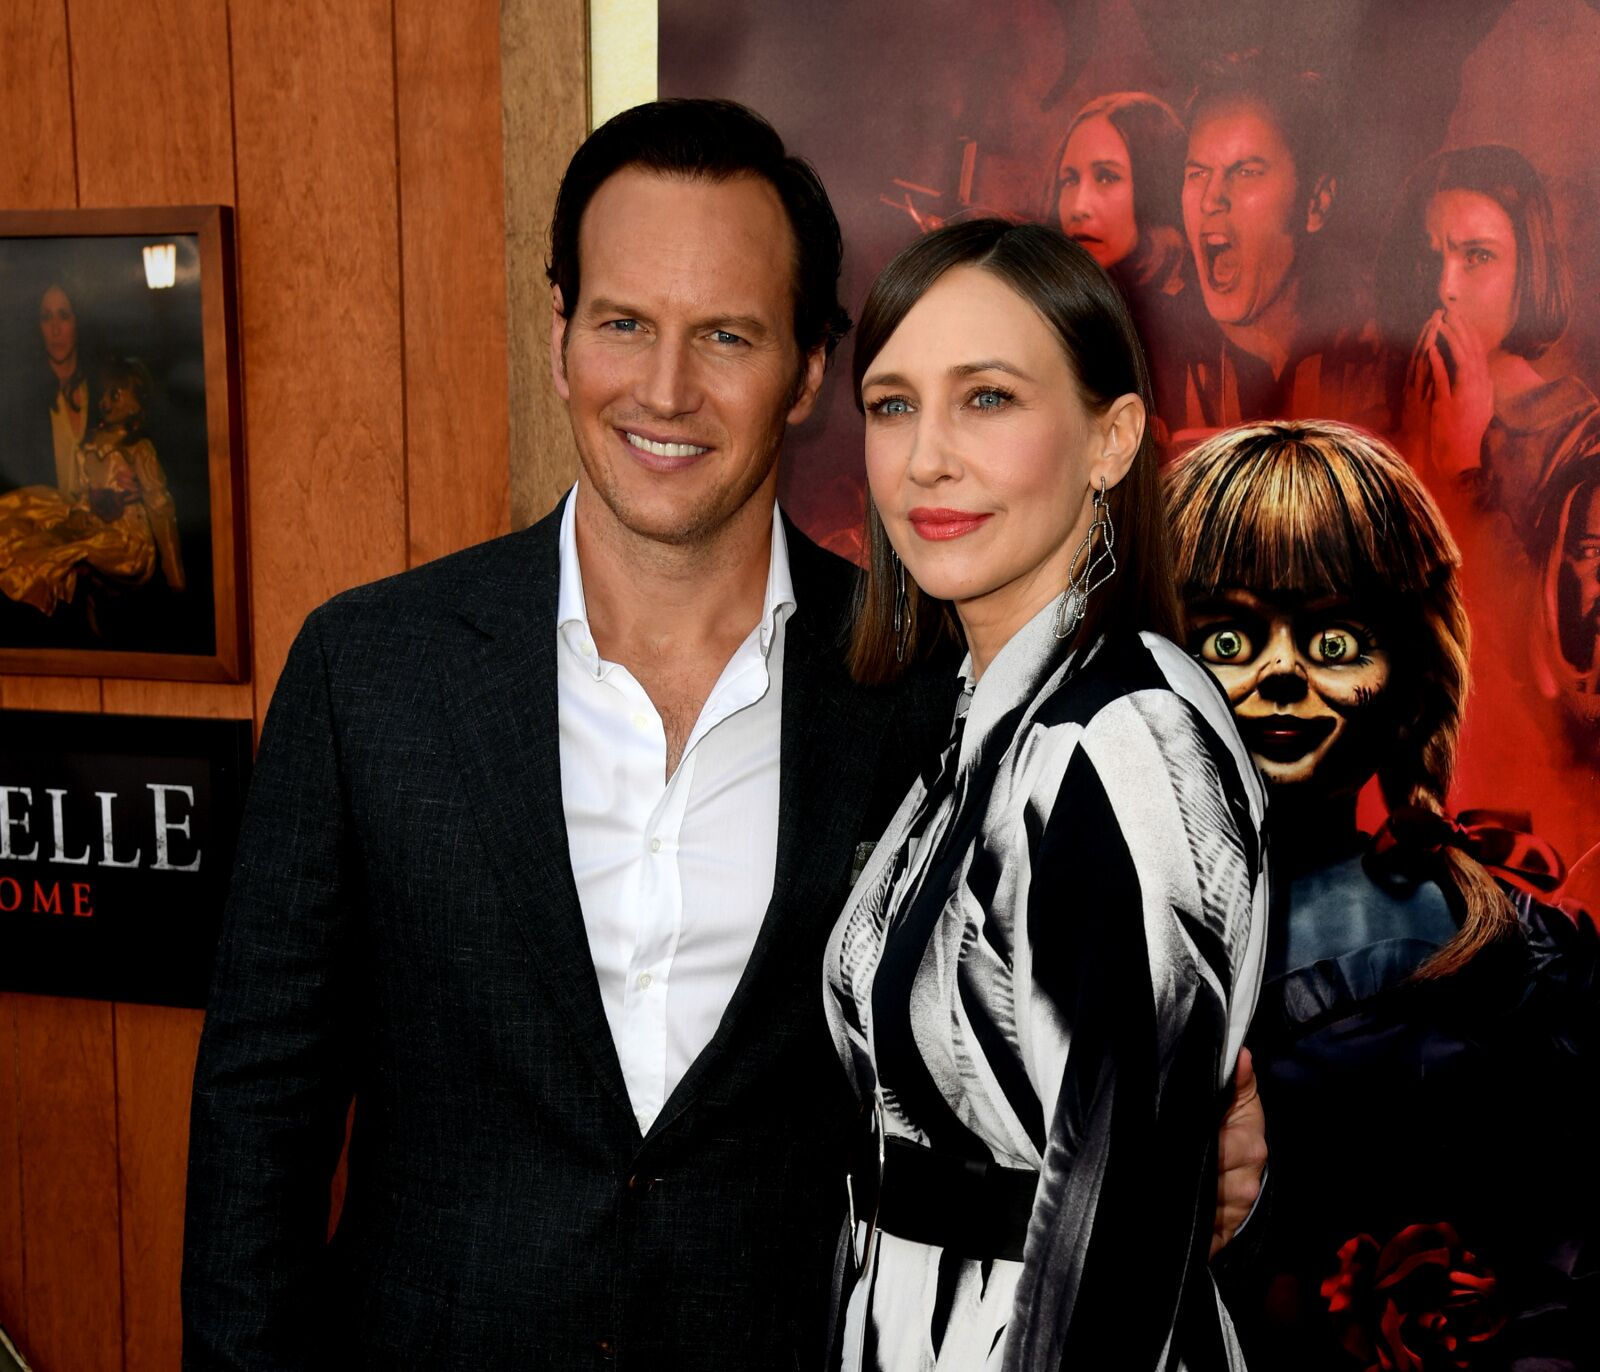 The Conjuring 3: The Devil Made Me Do It what we know so far…